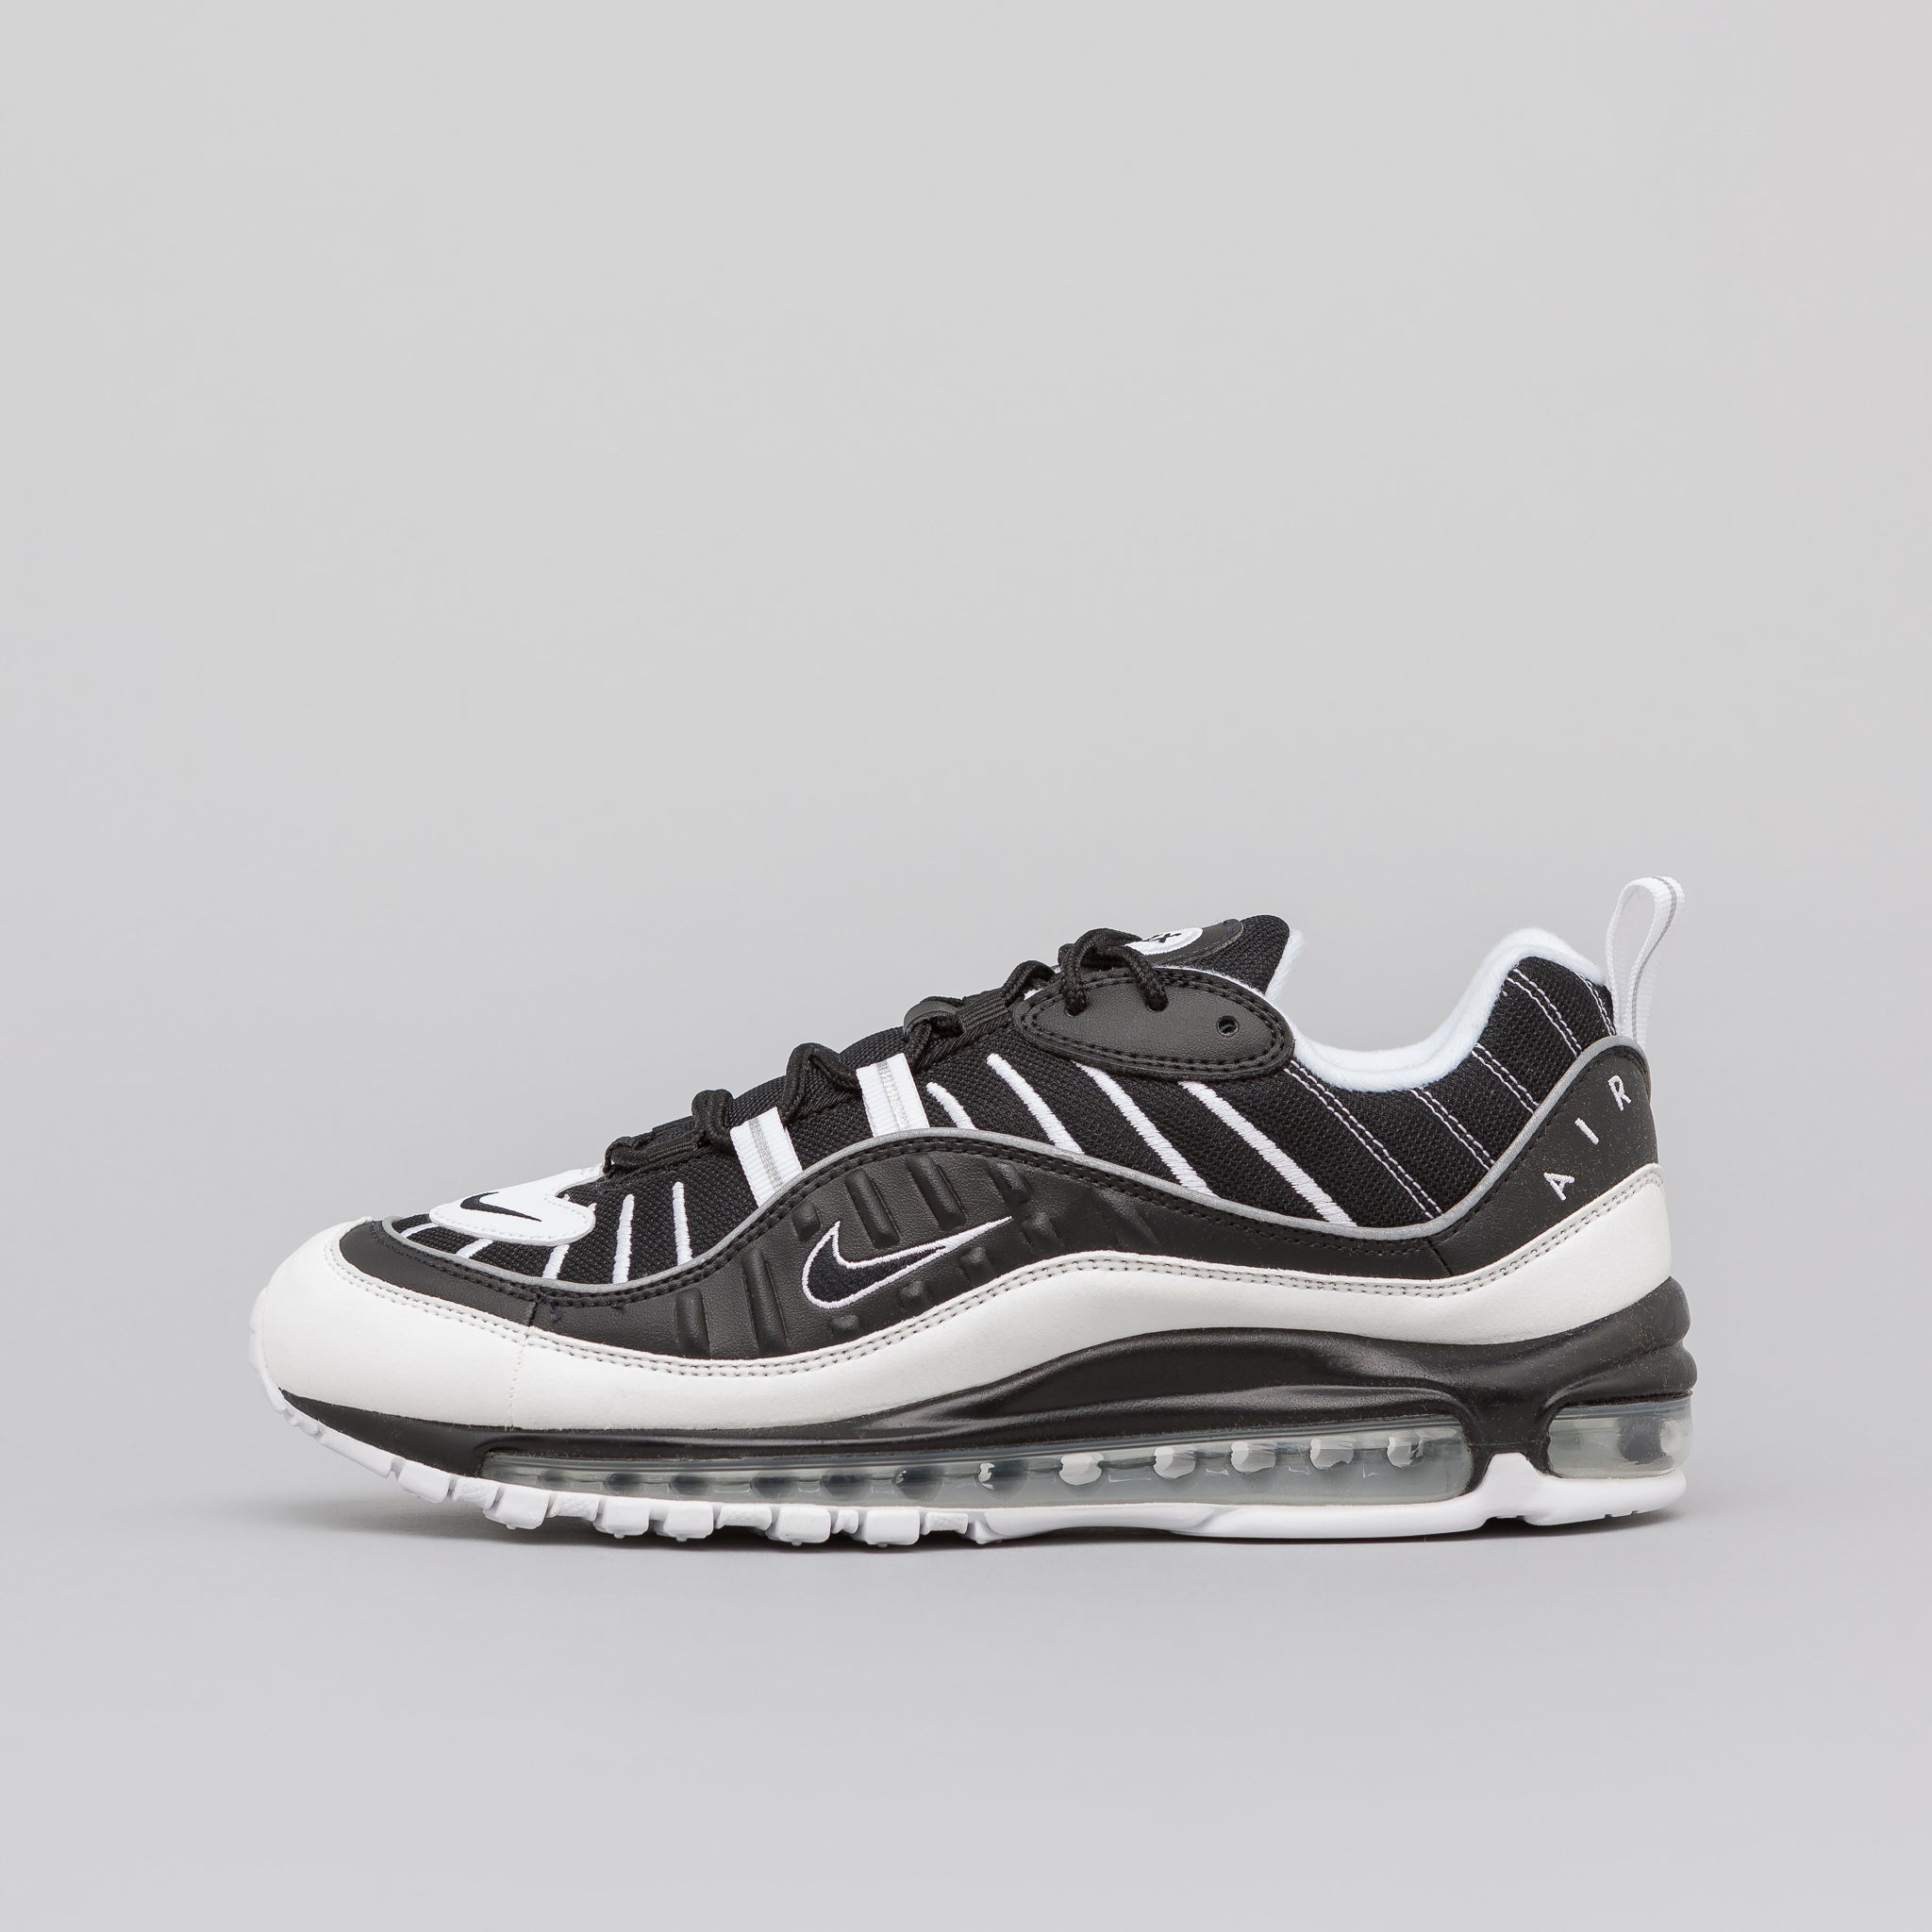 Air Max 98 in Black White Reflective Silver · Nike a0662d89c